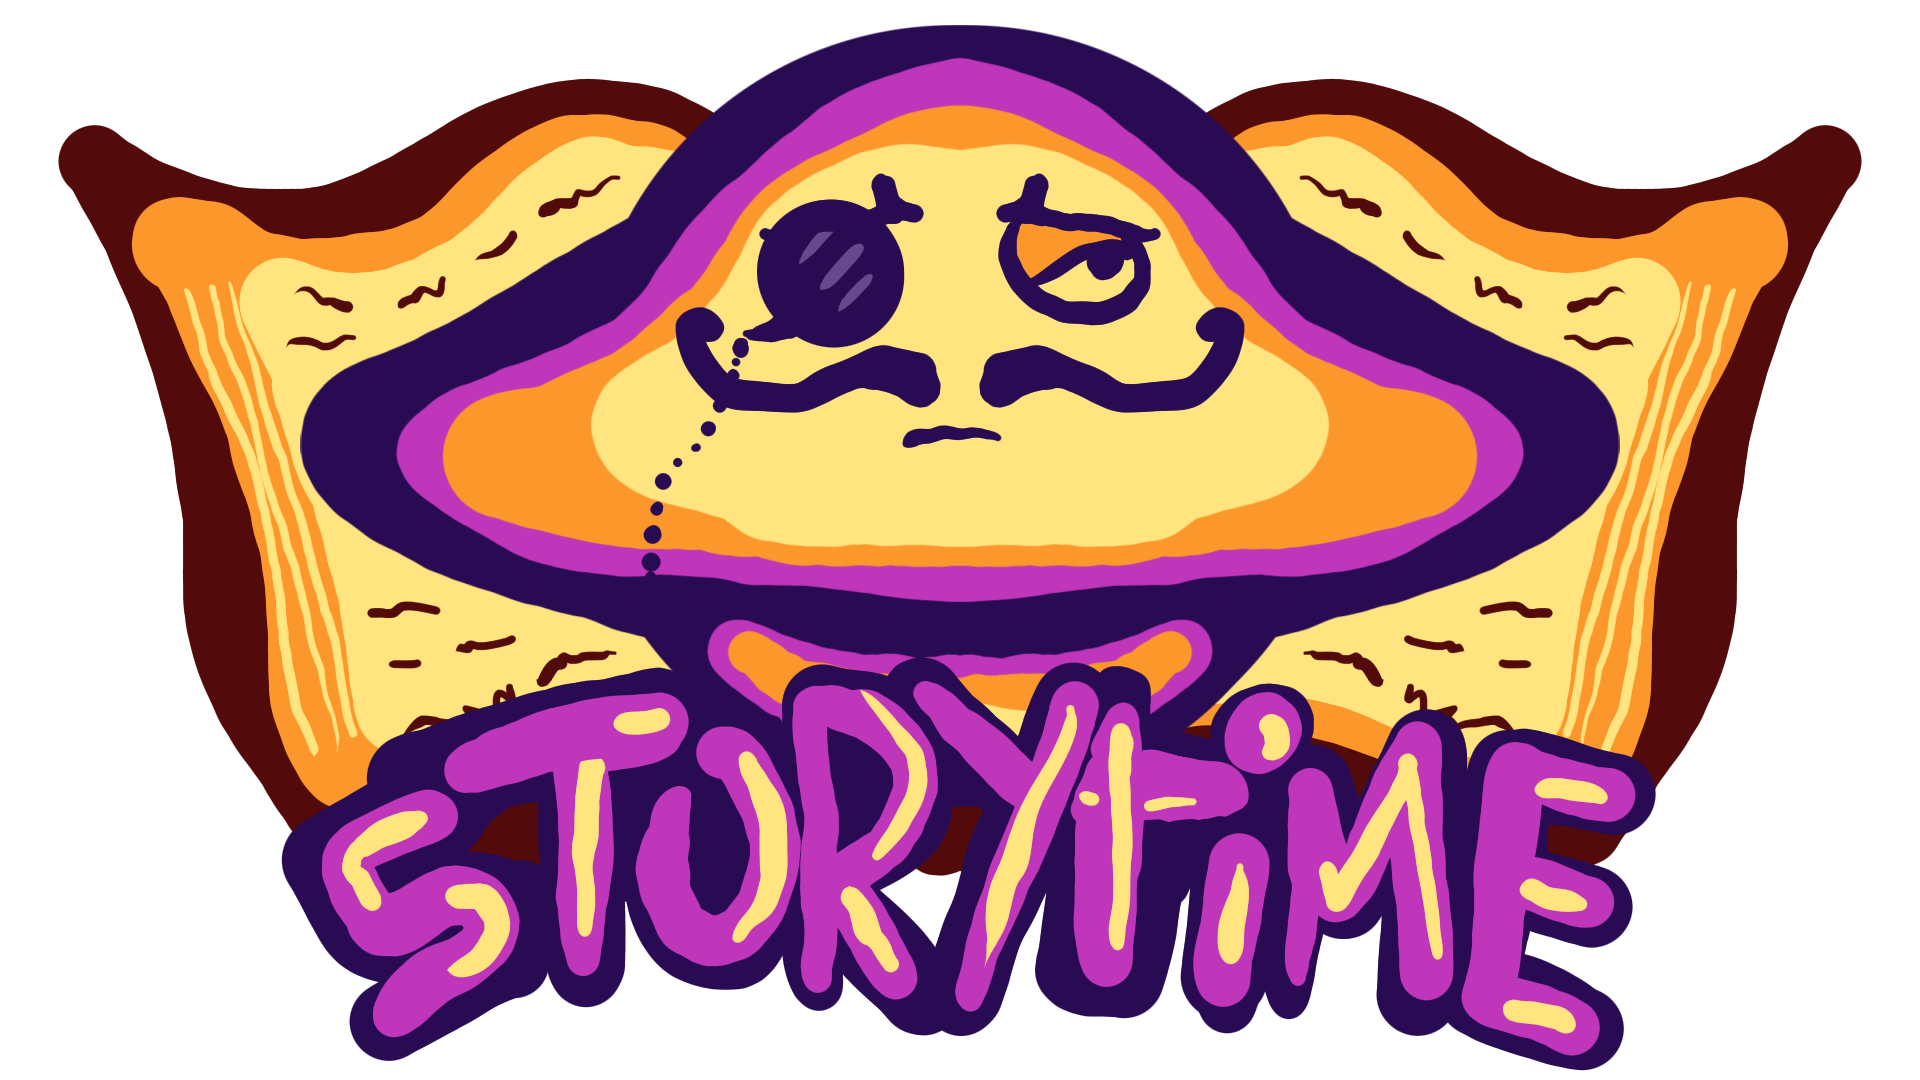 It's STORY-TIME (again)